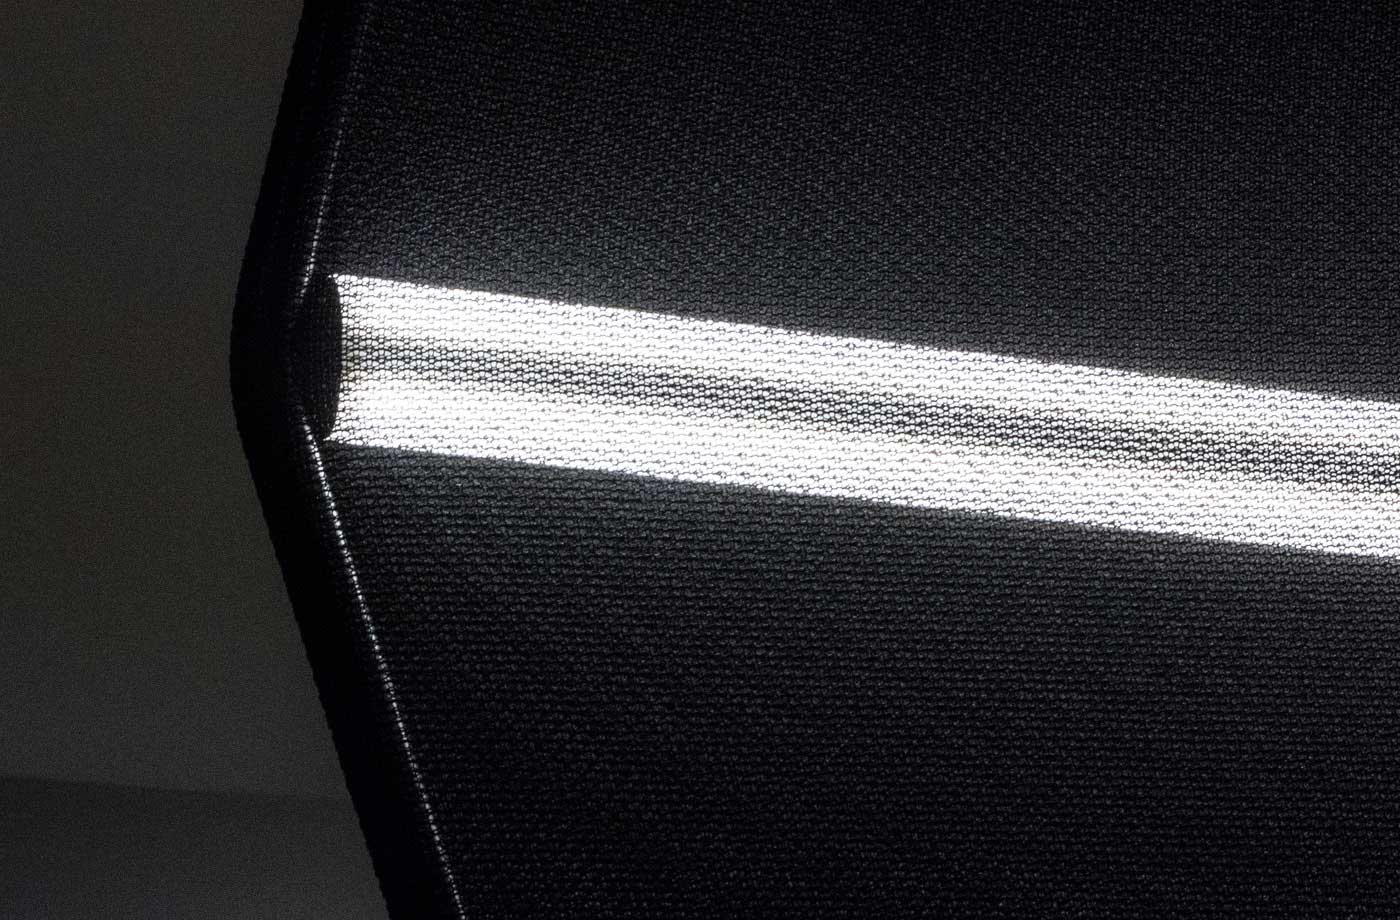 detail of the big scale led lamp